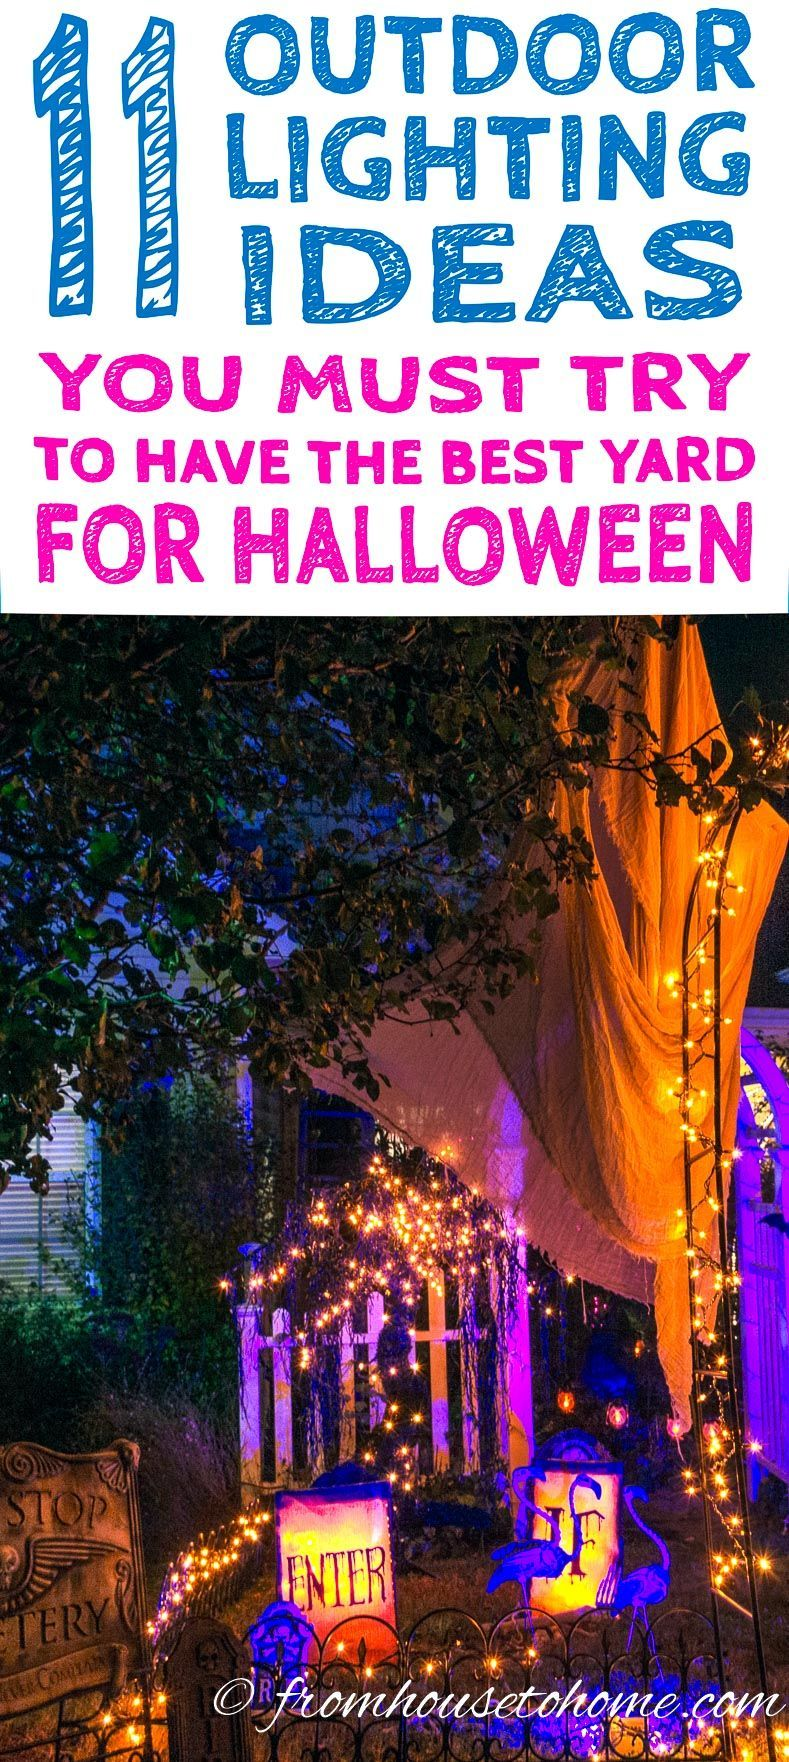 If you want some ways to make your yard haunt look spooky these